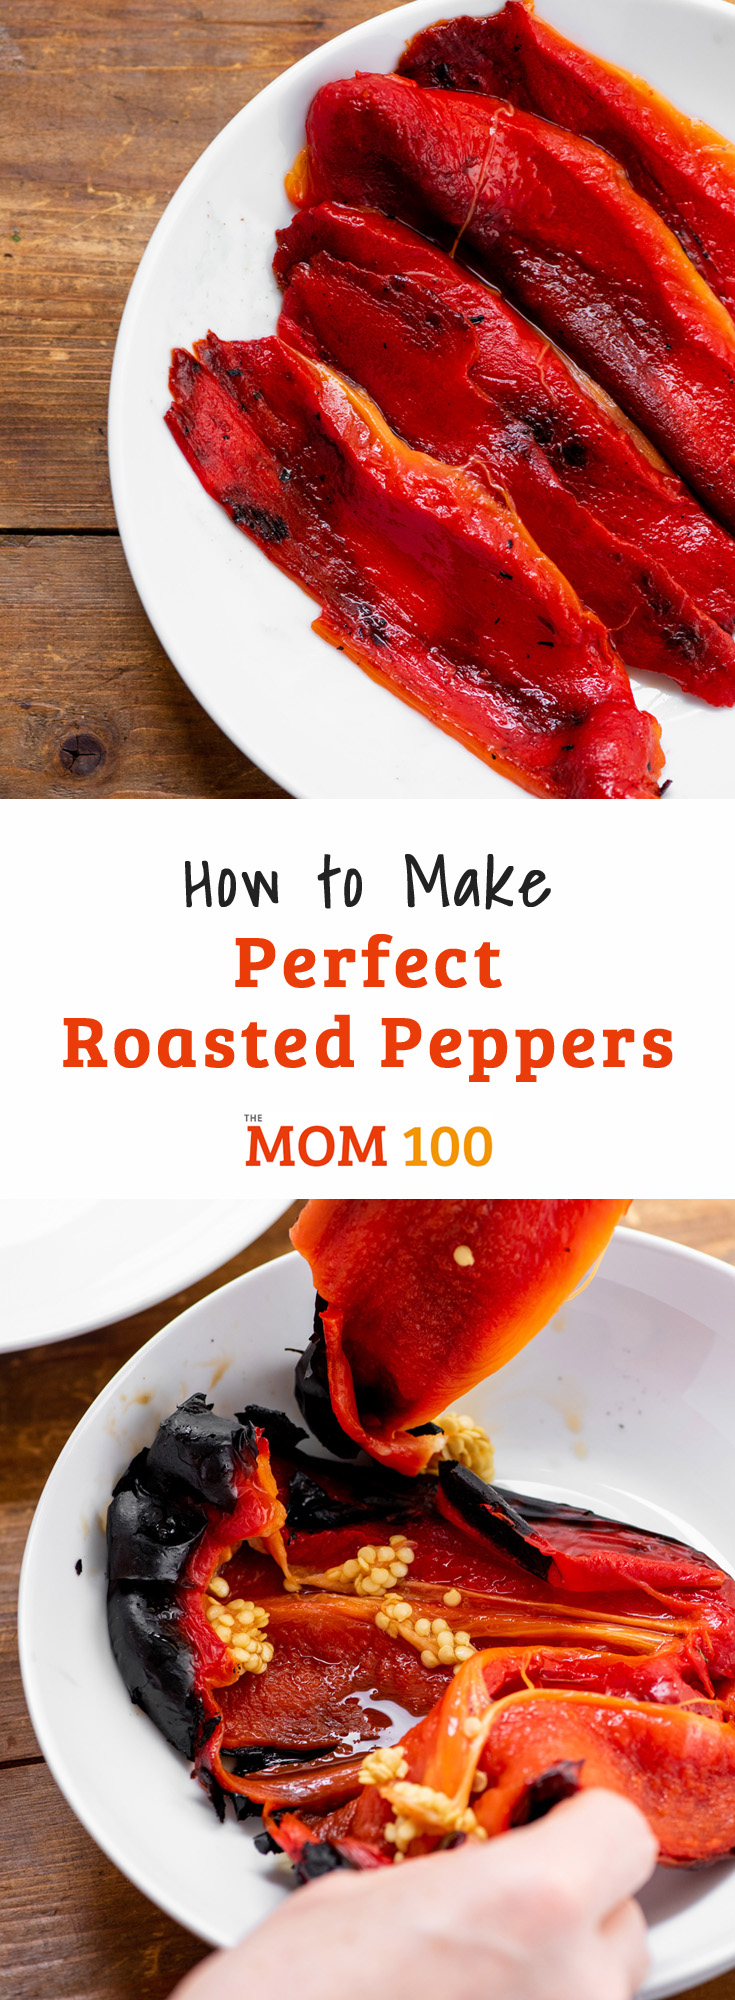 How to Make Perfect Roasted Peppers: Make those smoky, silky lush pepper at home in minutes.... and then use them all week long.